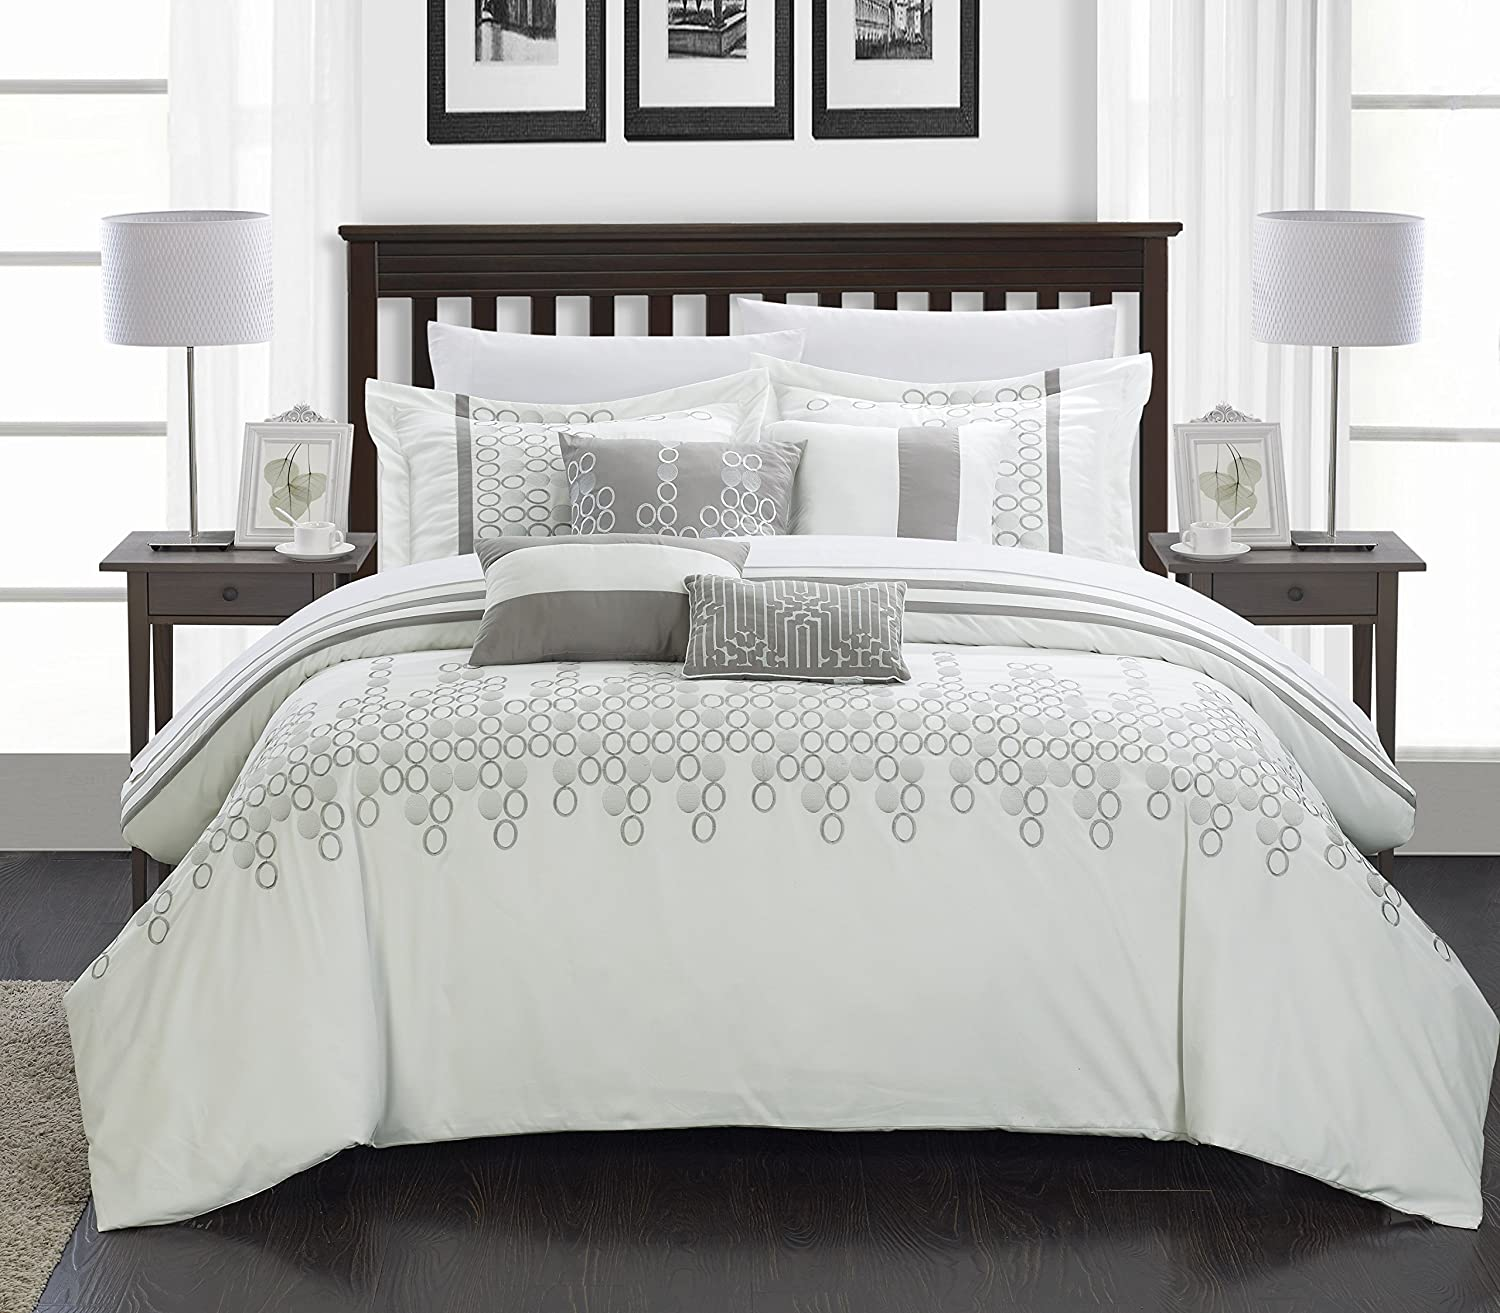 canada dillards size studio lovers sets purple quilts with charcoal striped dimensions in pintuck nautical quilted wells rose tree riverpark class touch along bahama luxury indulging discount rc tommy king oversized comforter as cute bedspread chrissy ensembles queen bedding classy bed